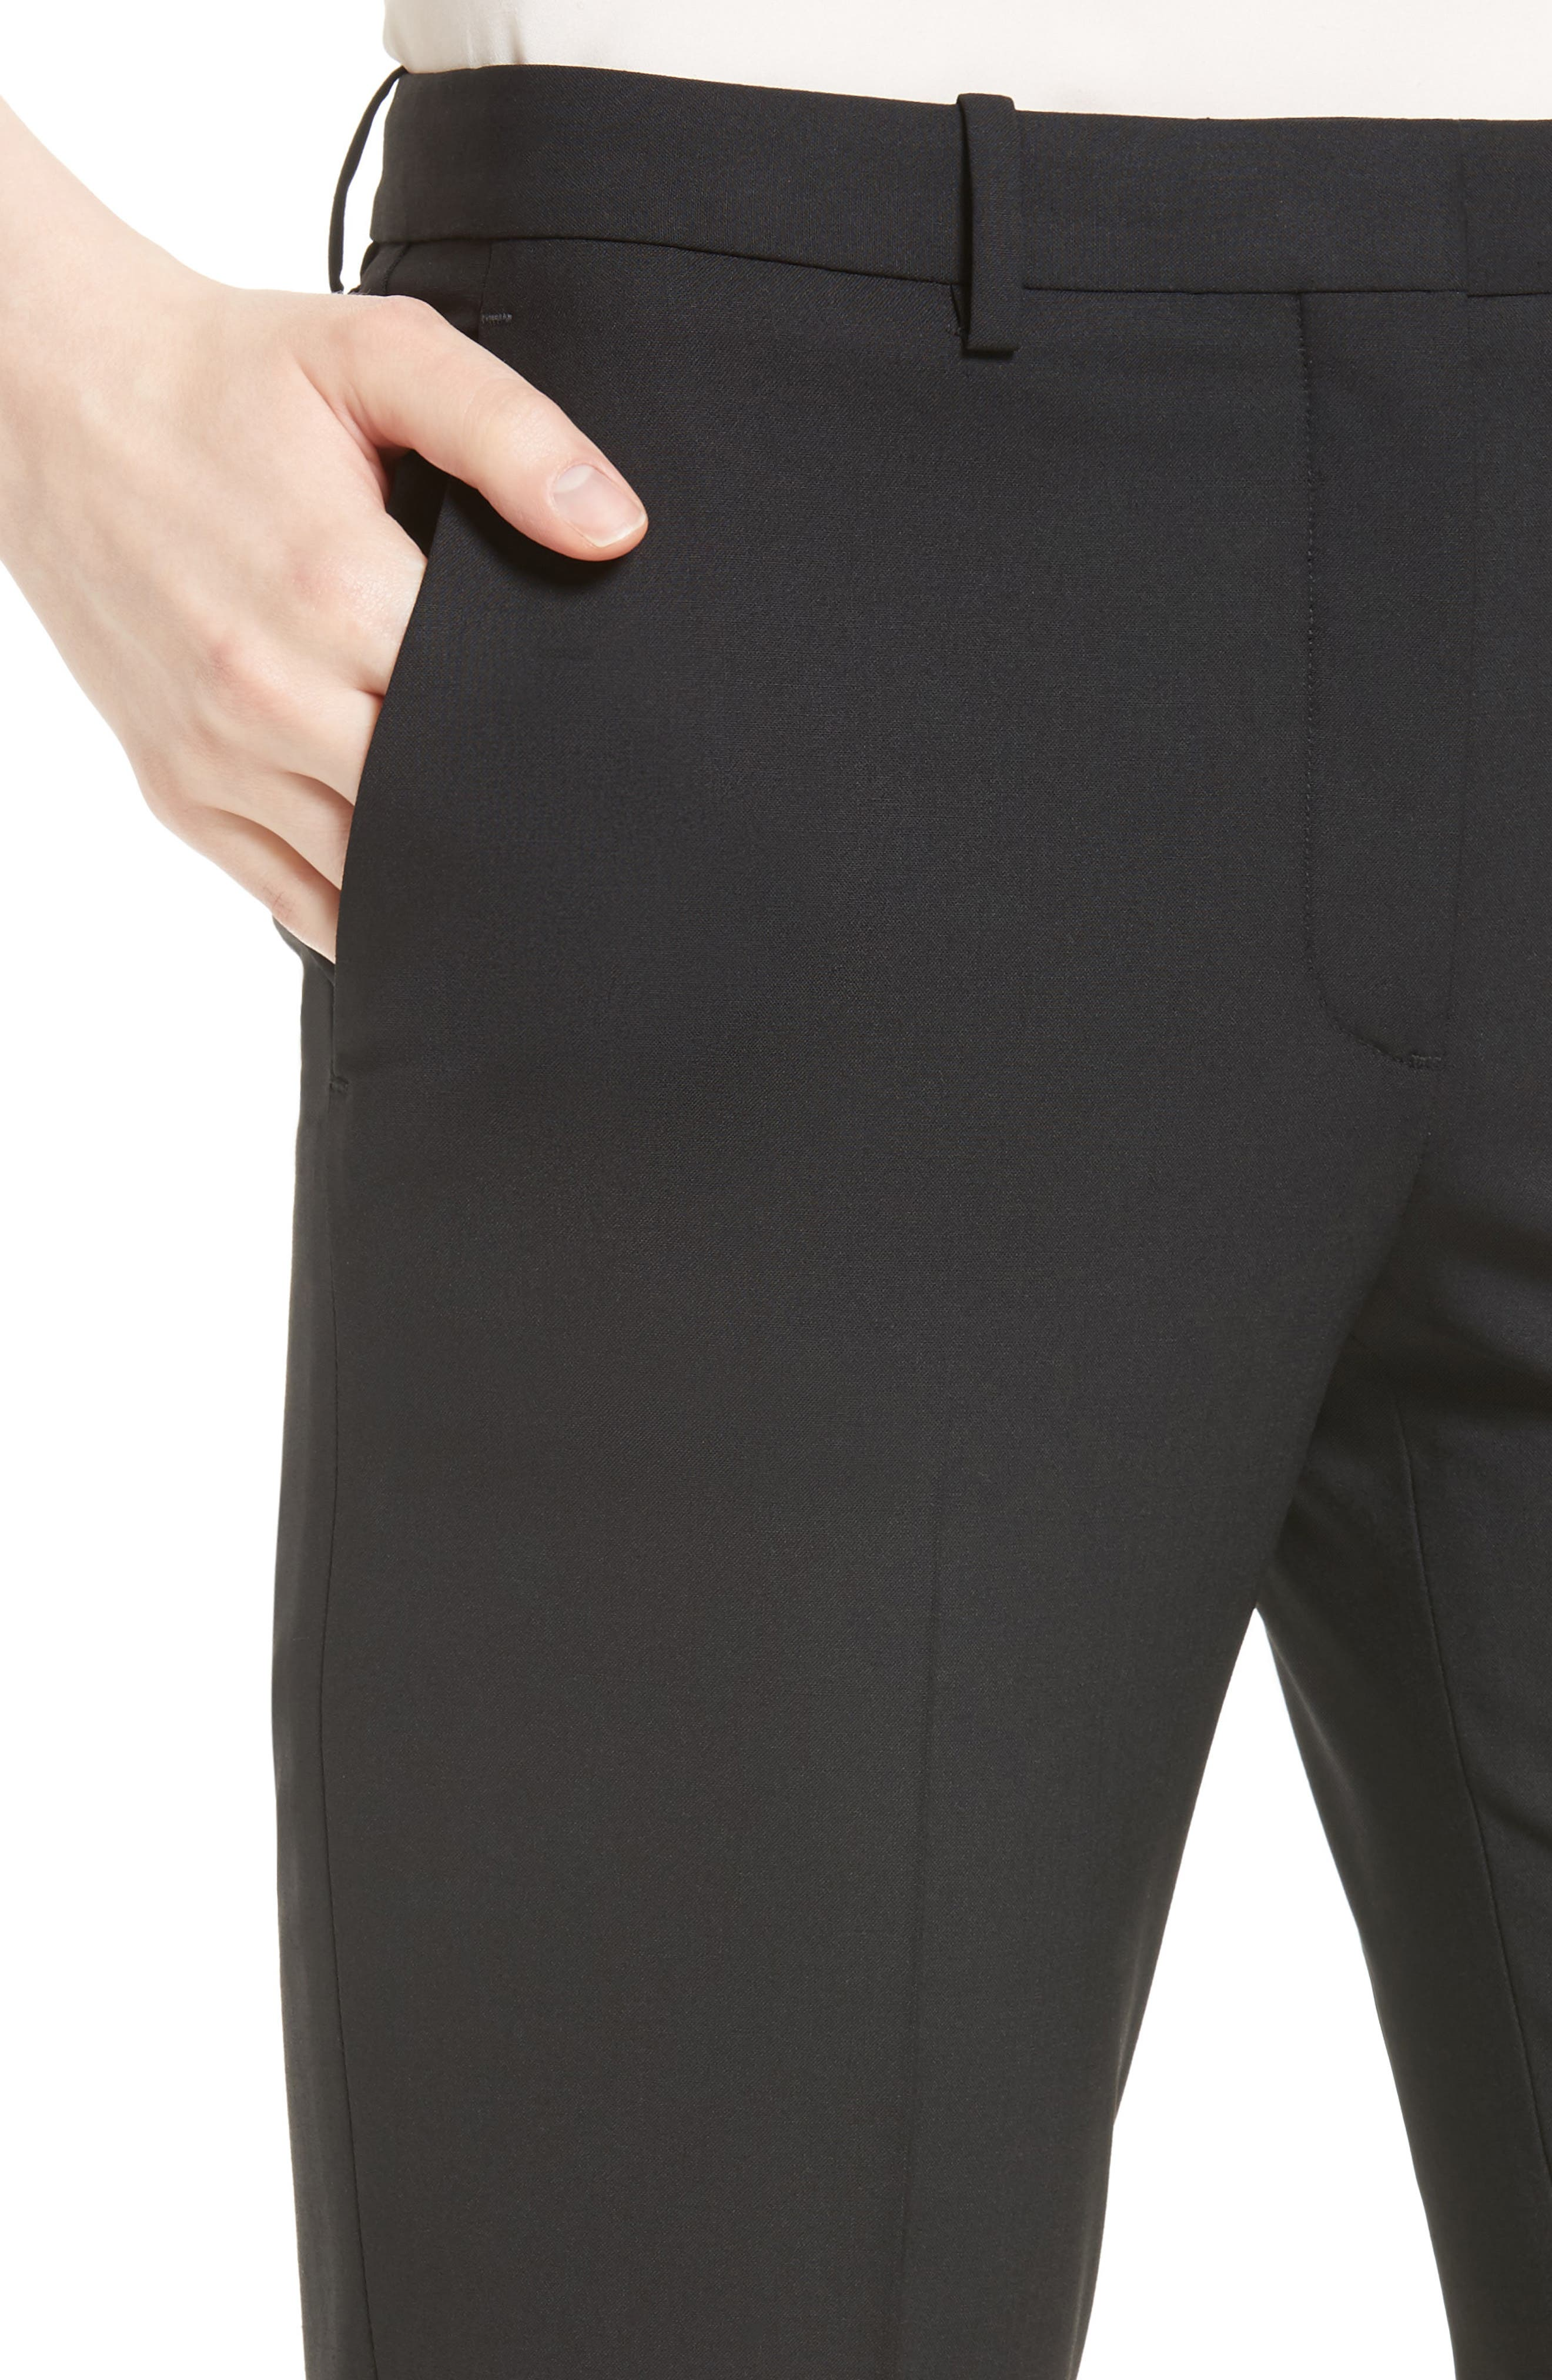 THEORY, Hartsdale B Good Wool Suit Pants, Alternate thumbnail 4, color, 001